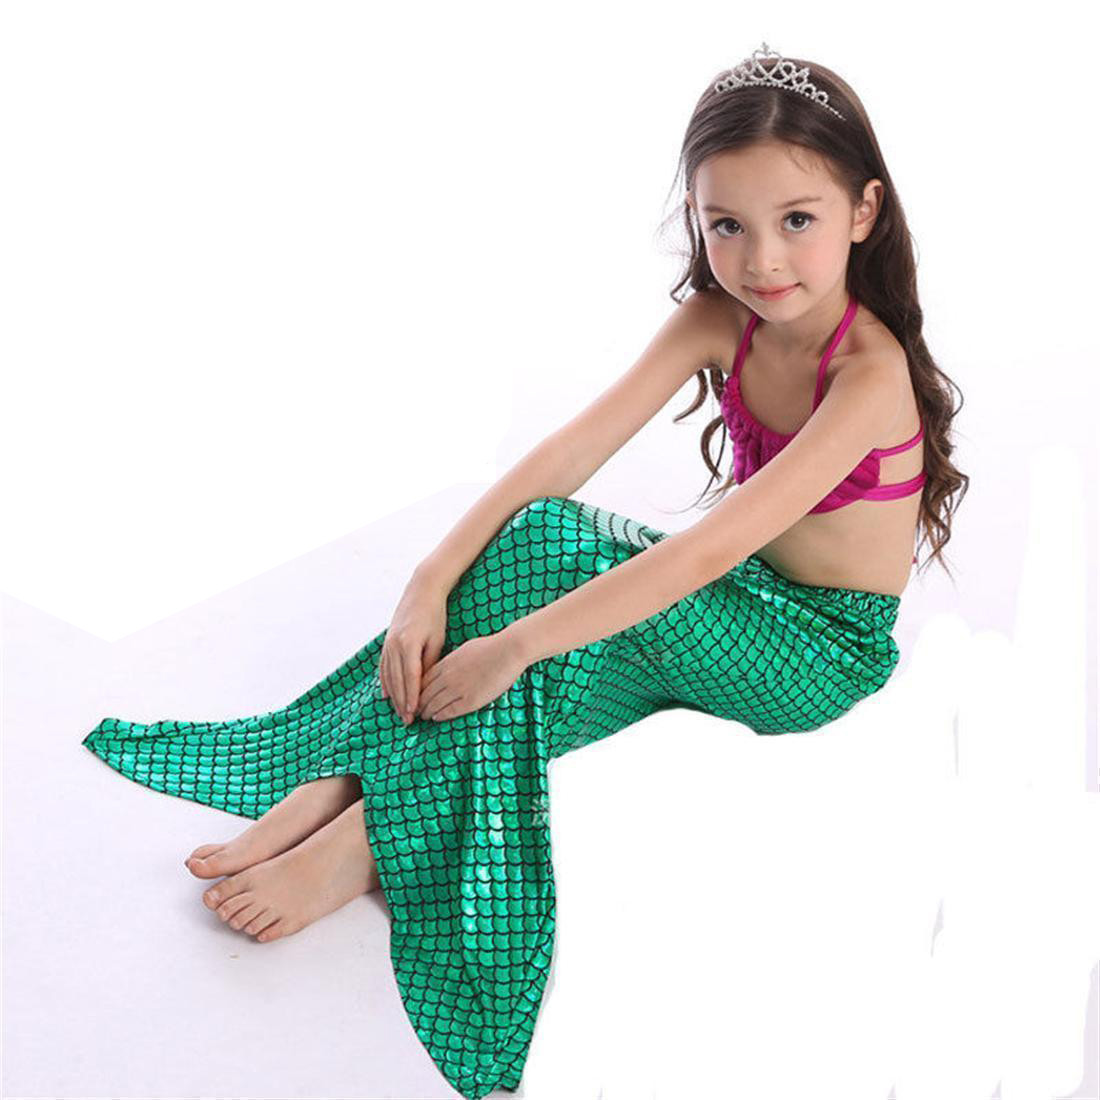 3Pcs New Kids Girls Mermaid Tail Swimmable Bikini Set Swimwear Swim Costume Children Bikinis Set Swim Suit 5